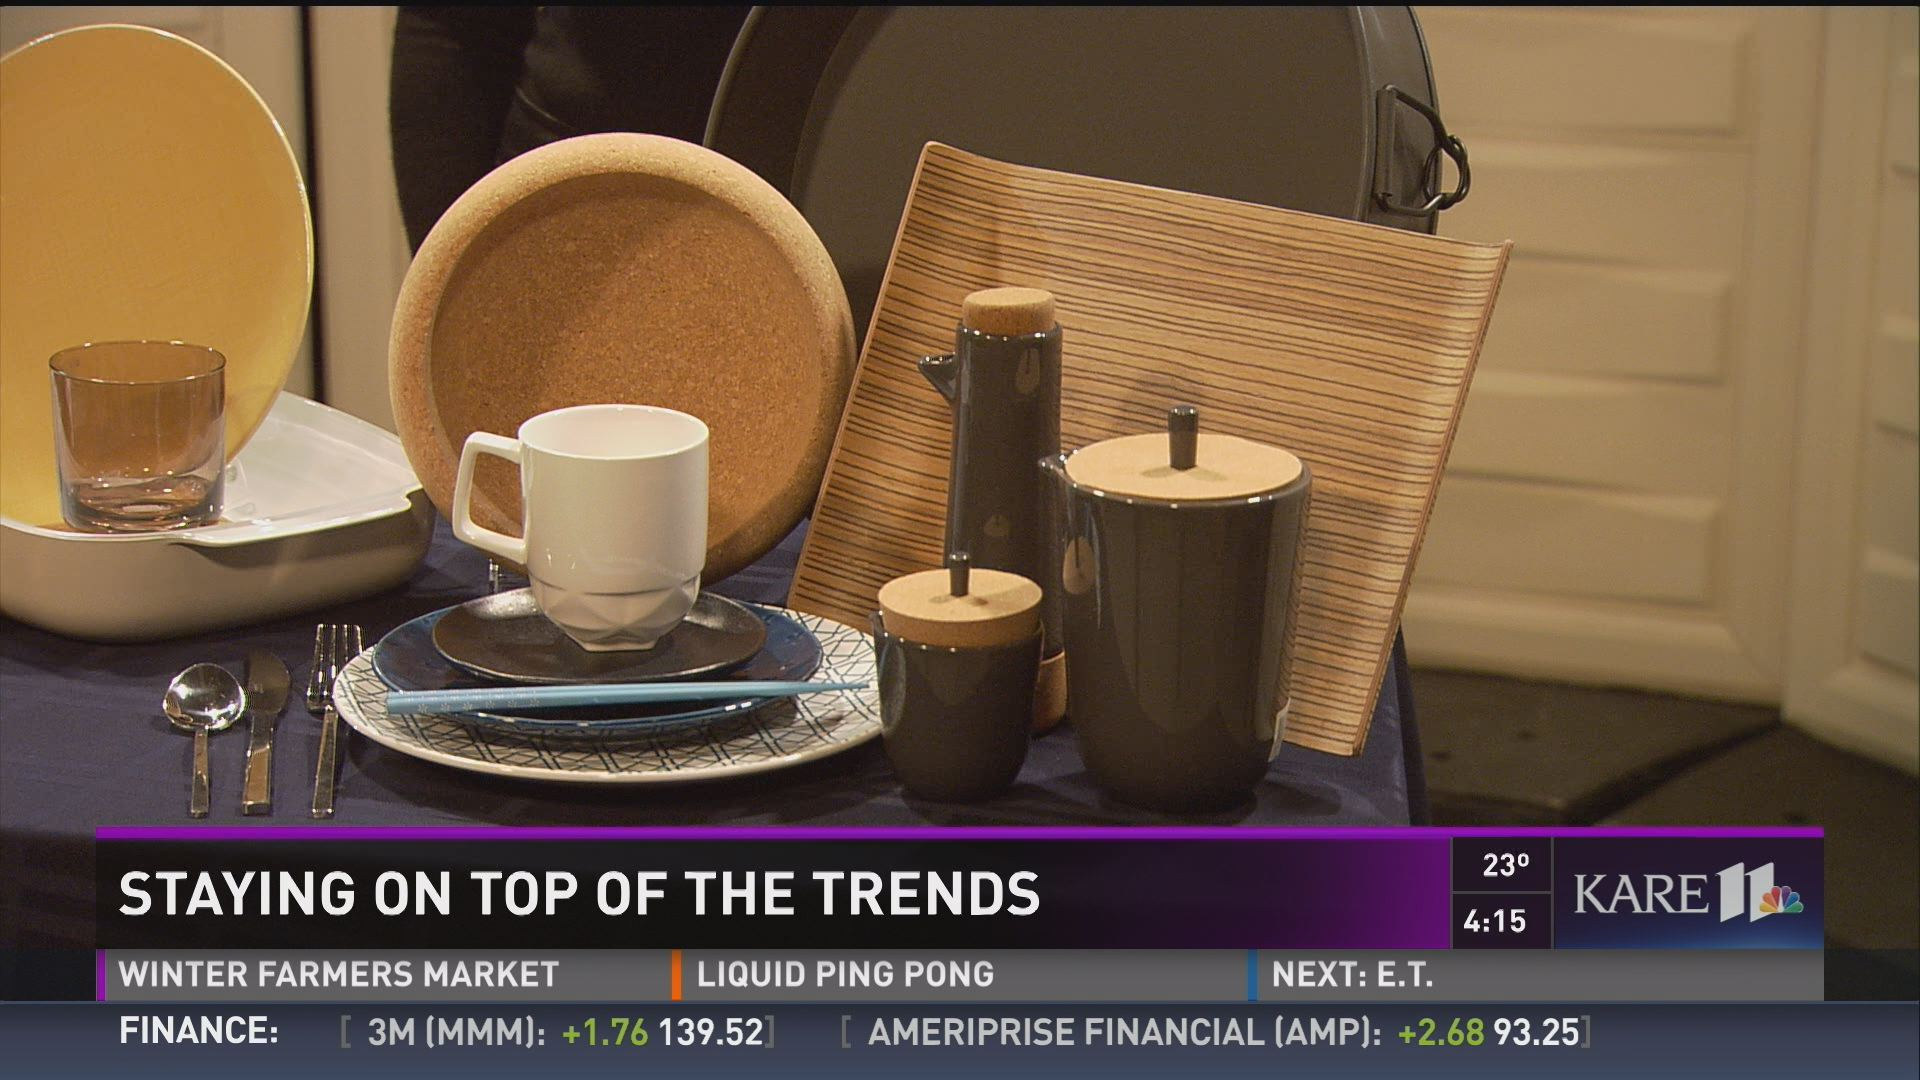 It 39 S Back To The 70s In Home Decorating Trends For 2016